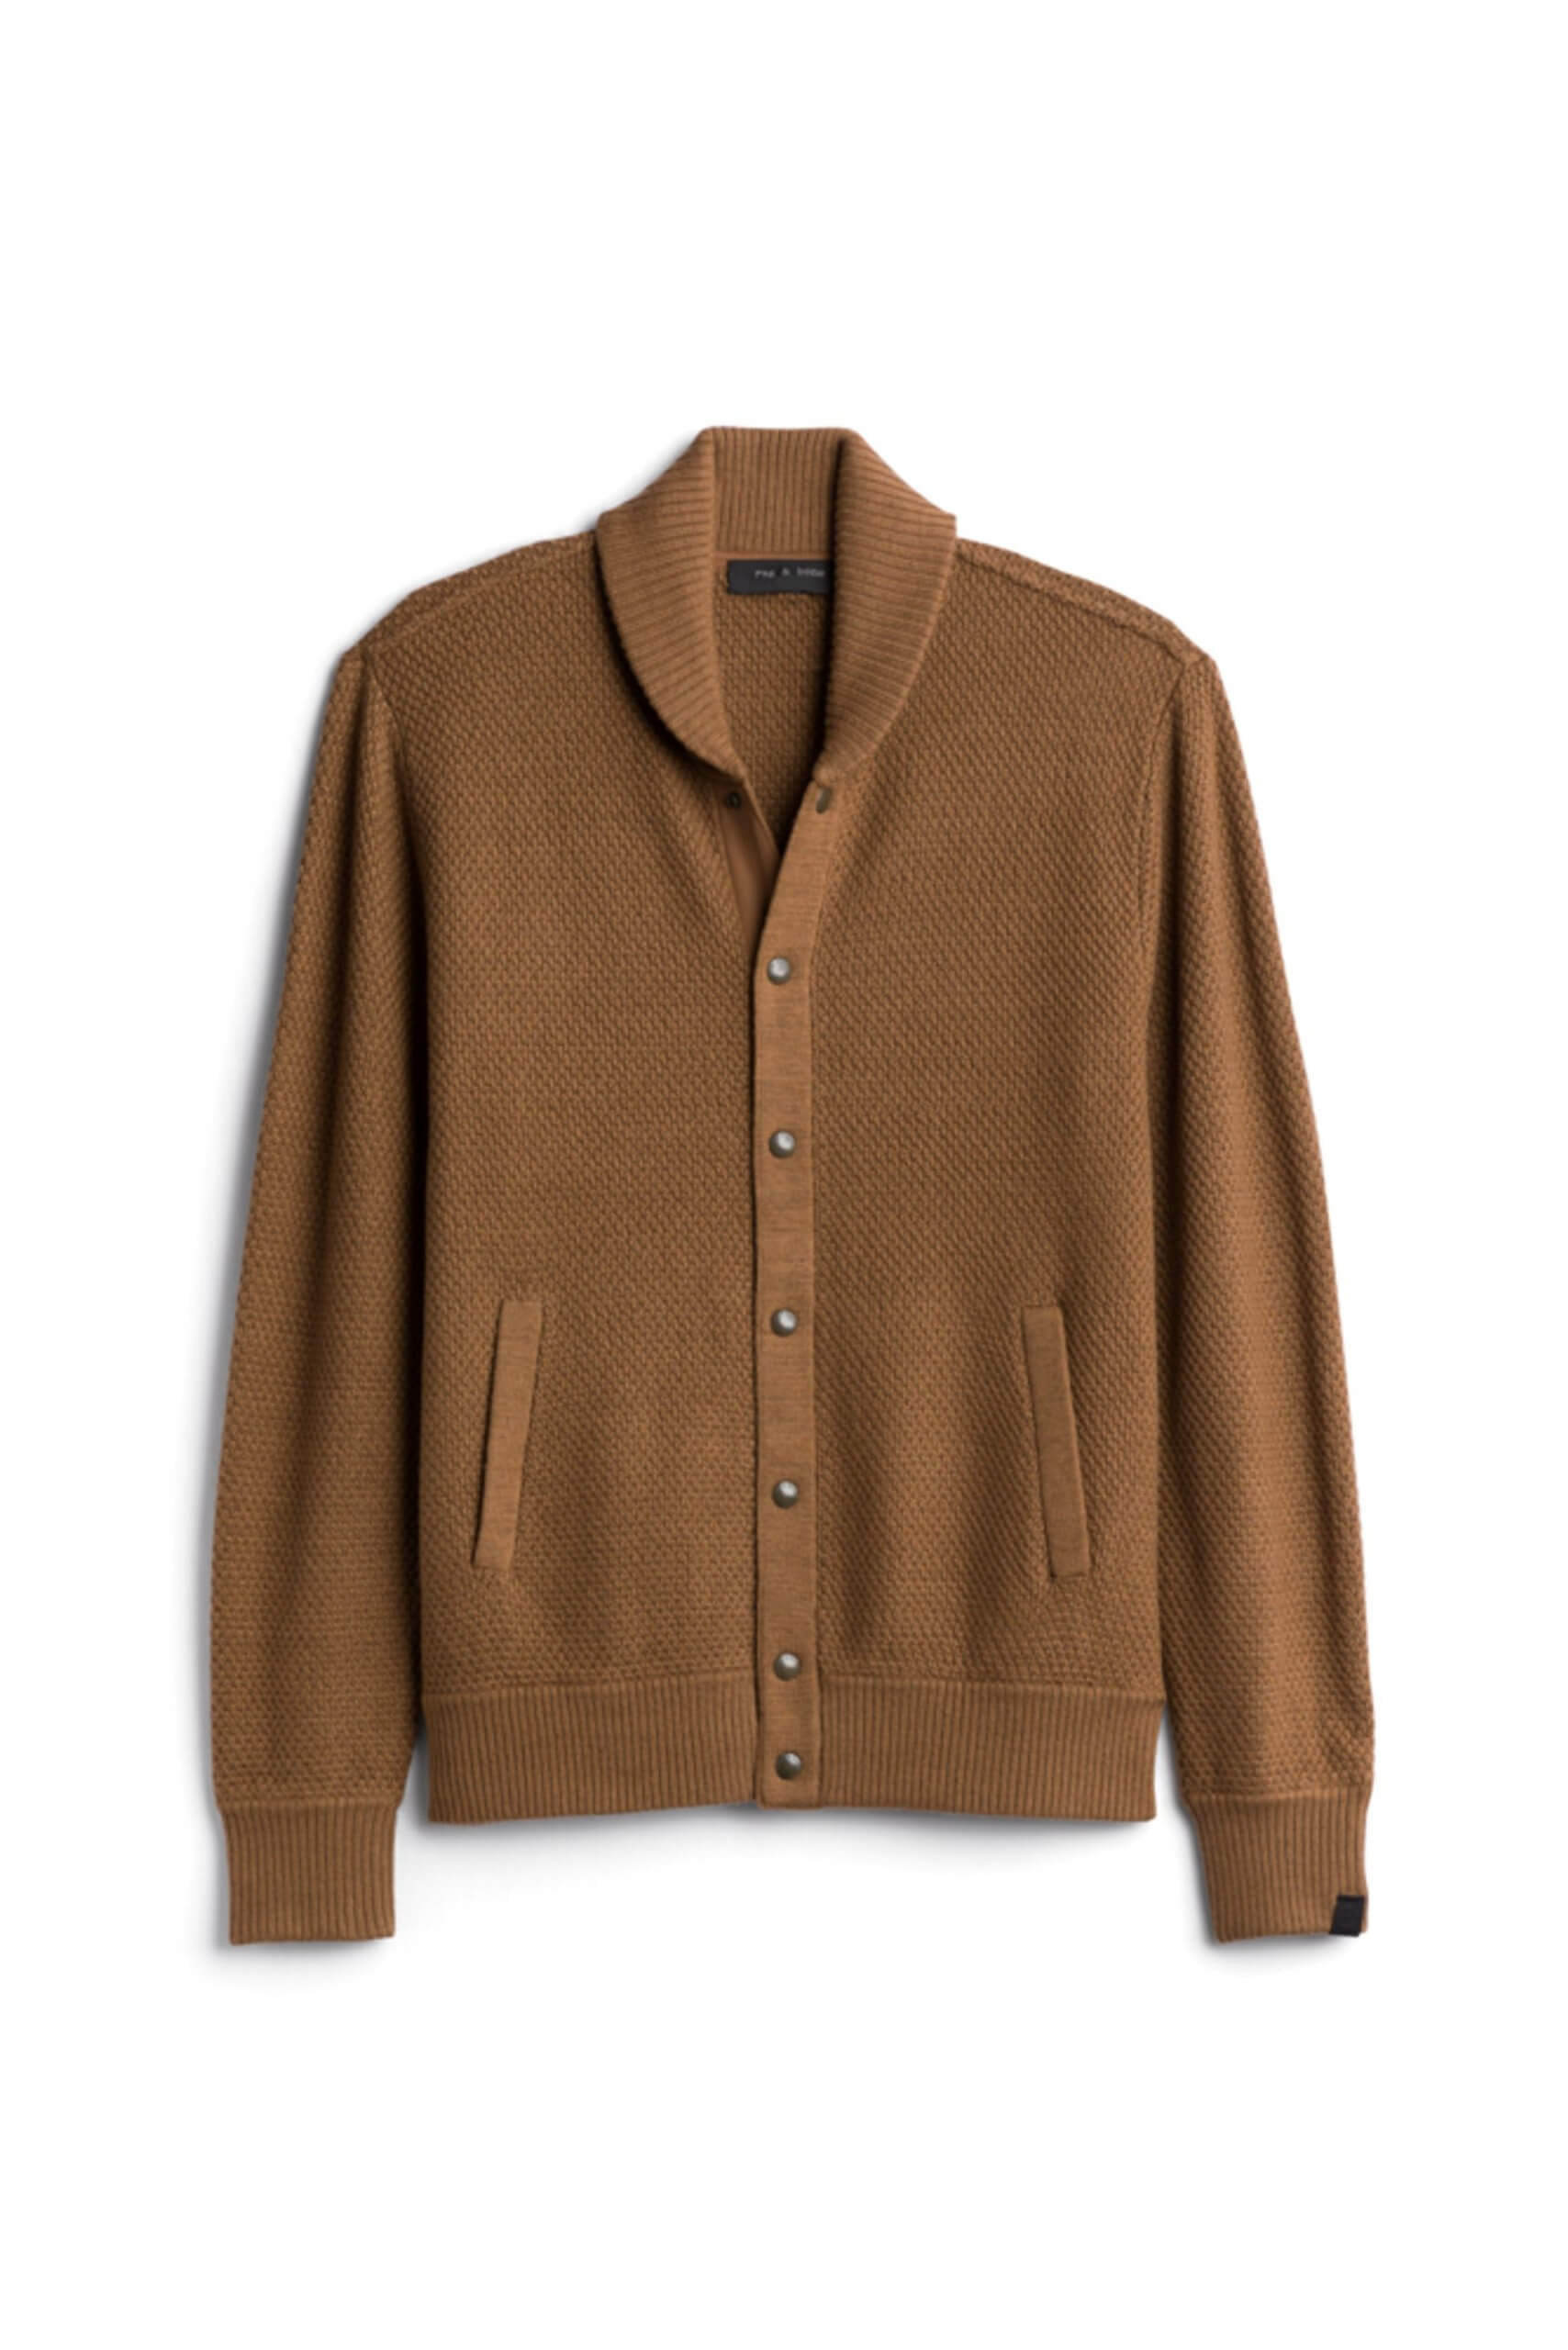 Stitch Fix Men's brown shawl cardigan.